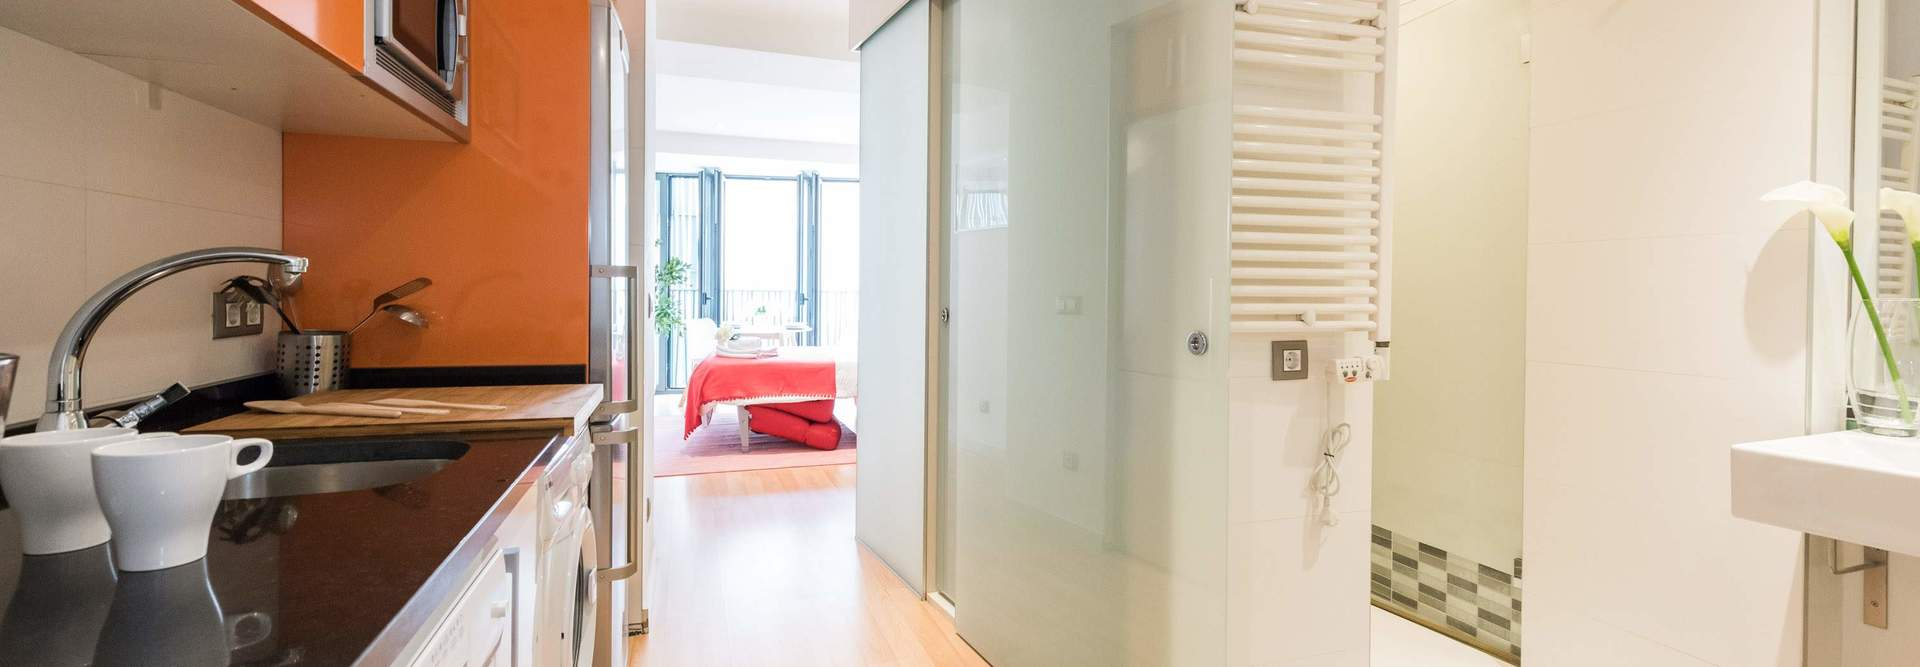 Home alquiler apartamento madrid centro mad4rent  34